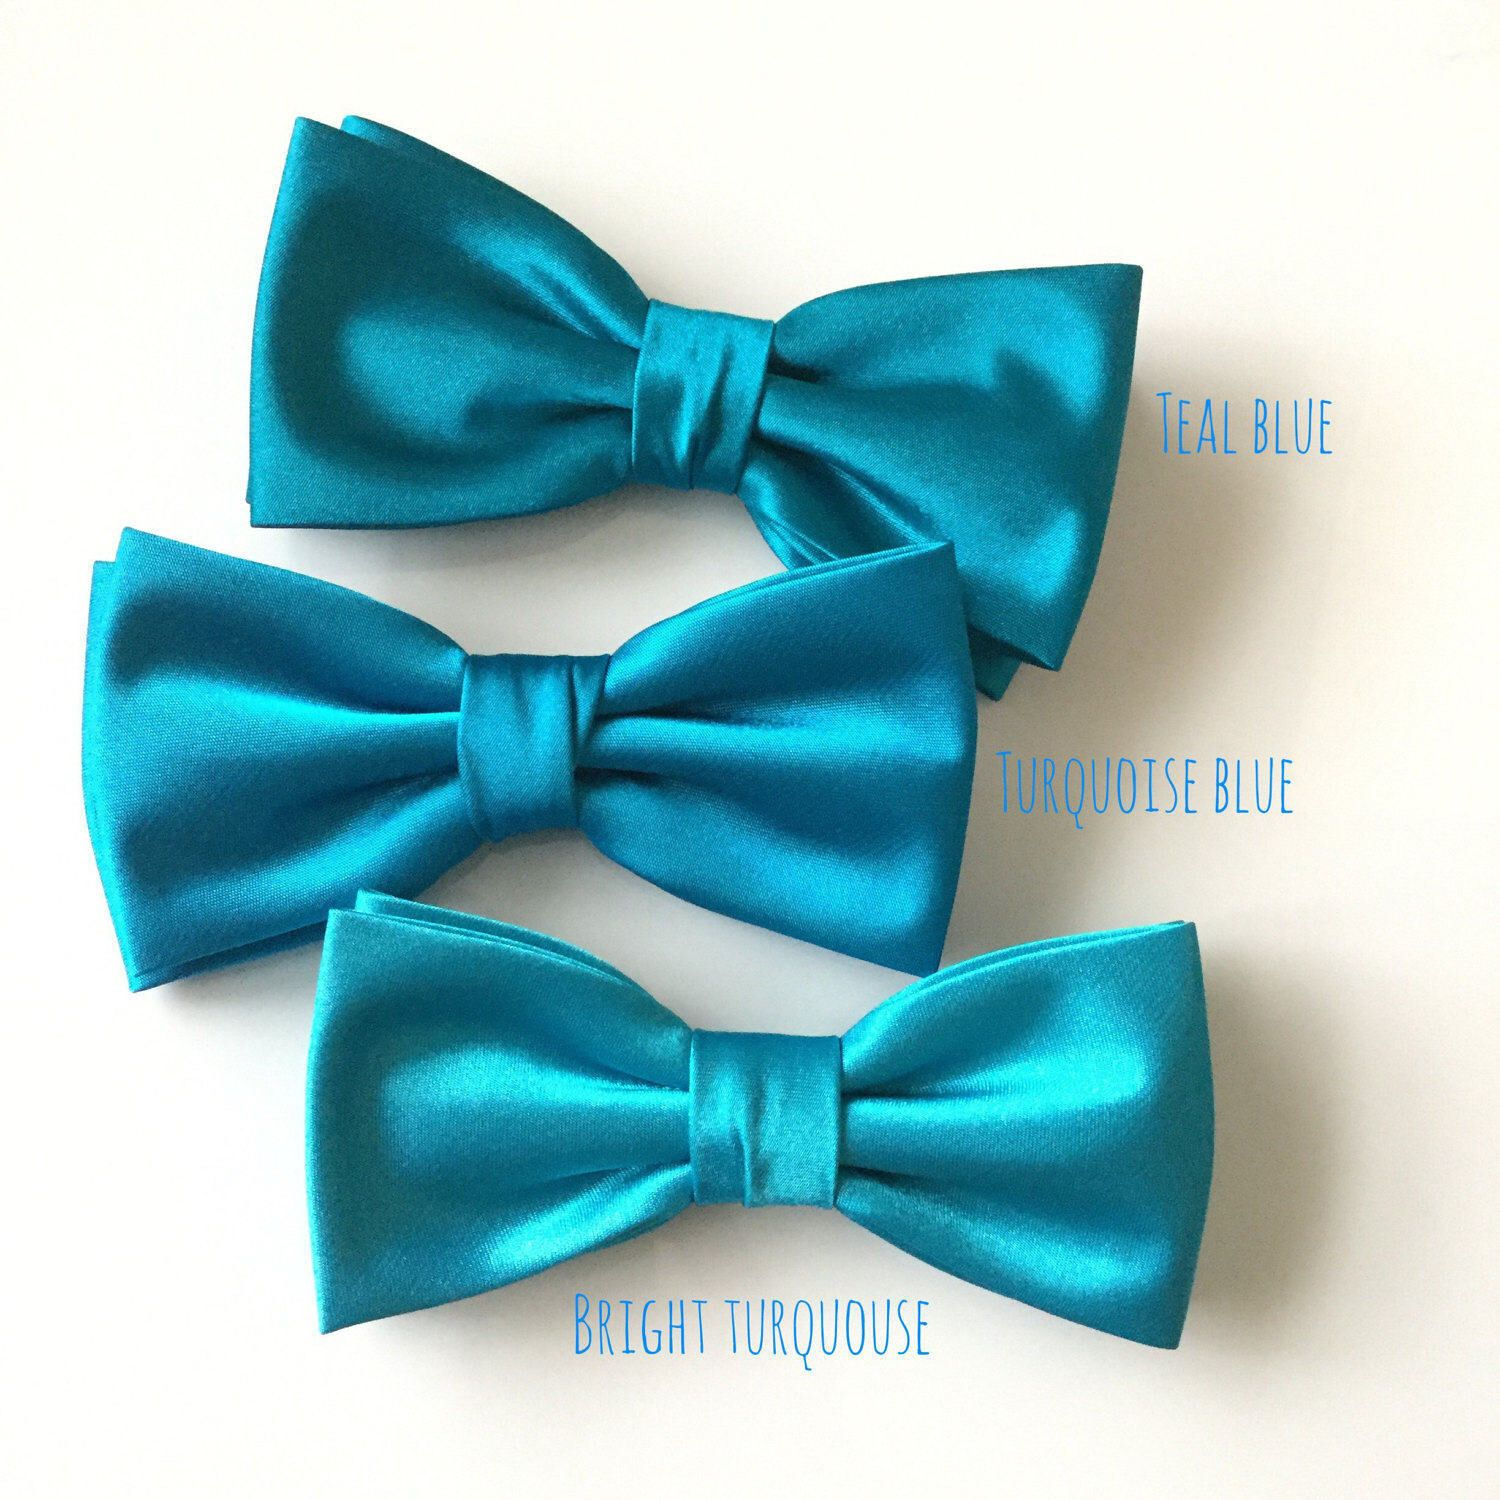 Teal Blue Bow Tie, Turquoise Bowtie, Solid Satin Bow Tie,